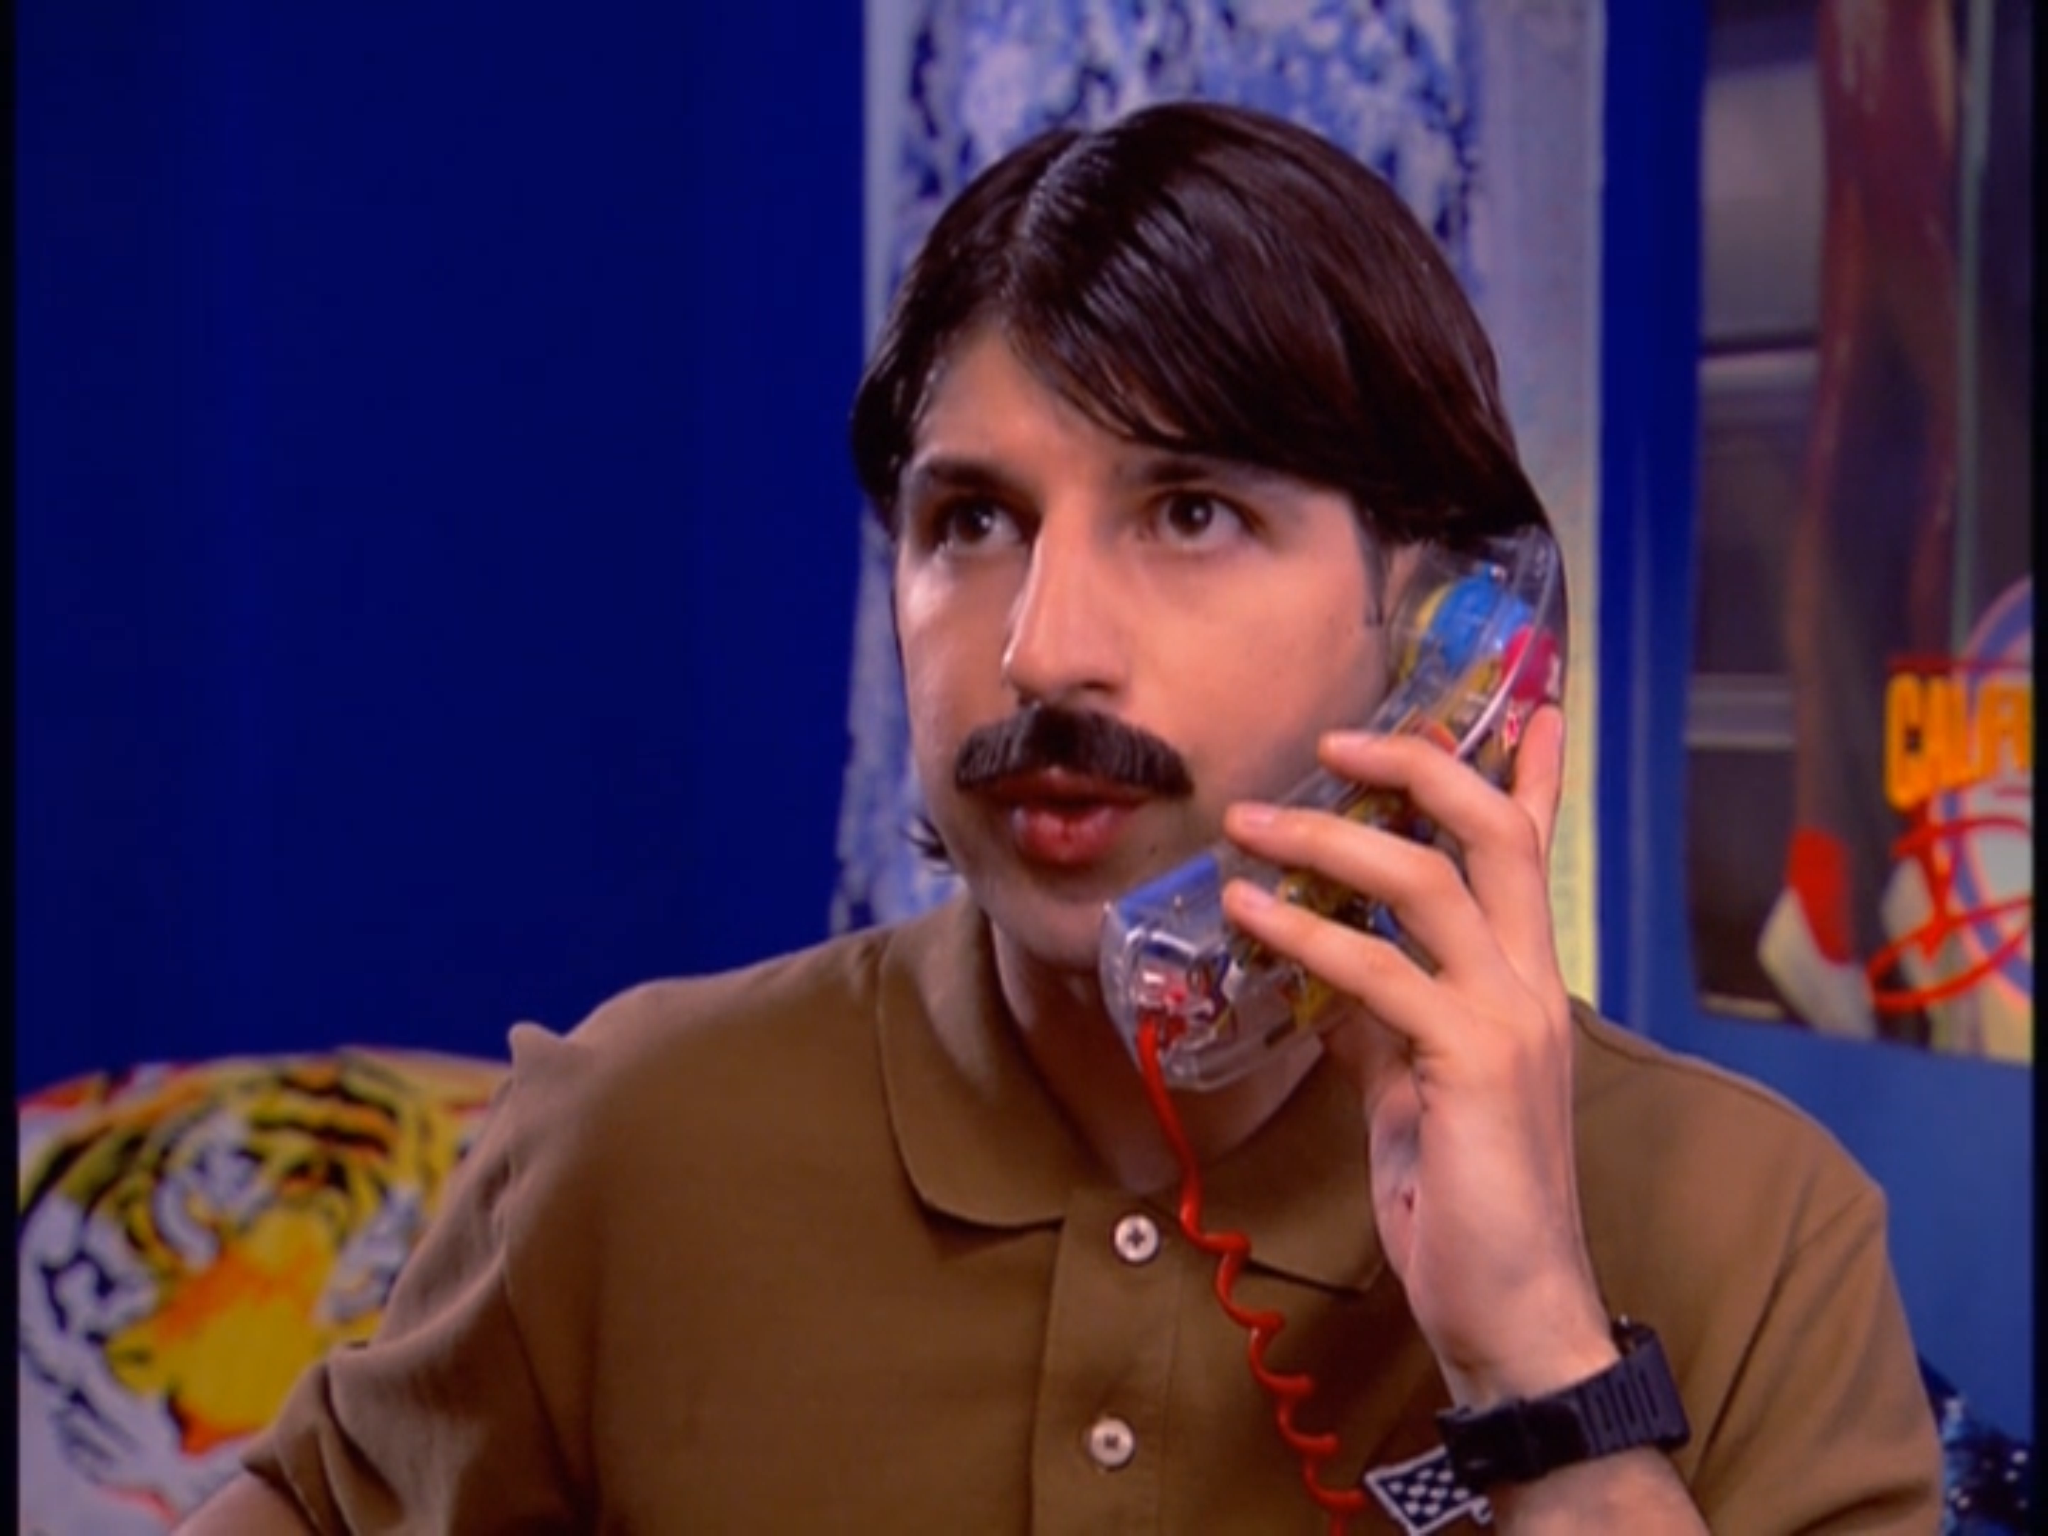 Important Things With Demetri Martin Steeshes Mustaches And